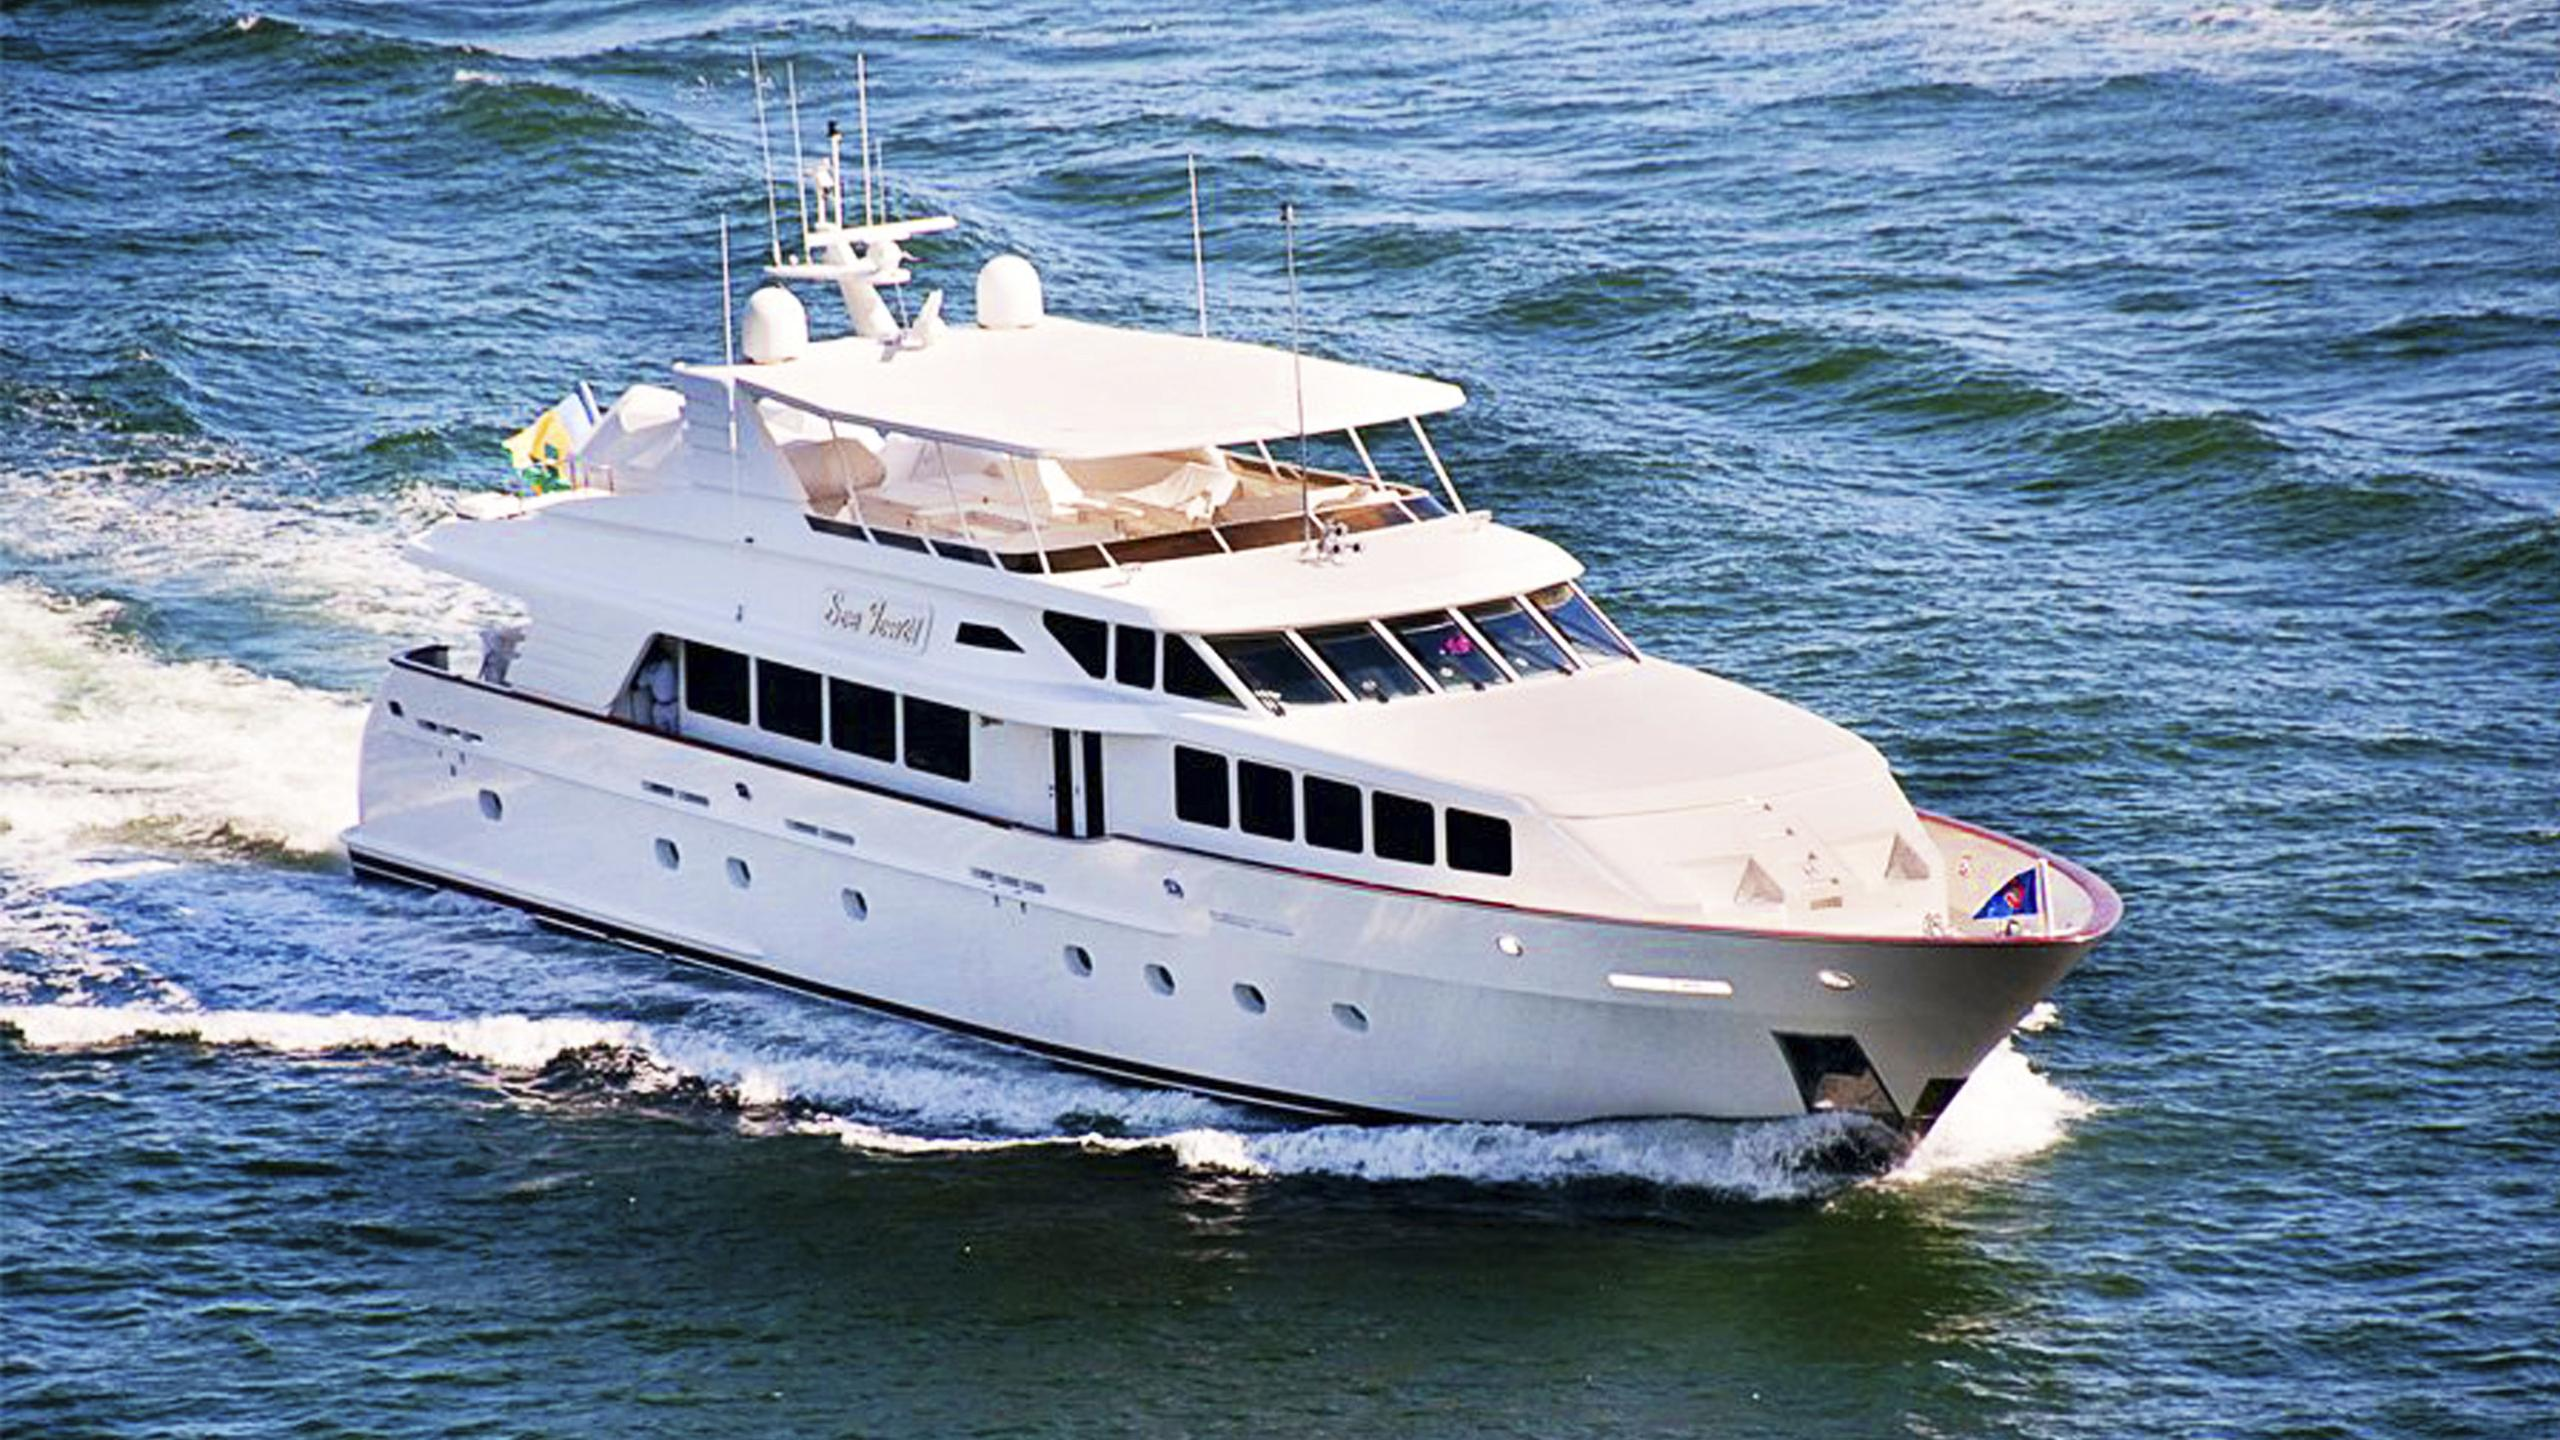 sea-jewel-bravo-yacht-aerial